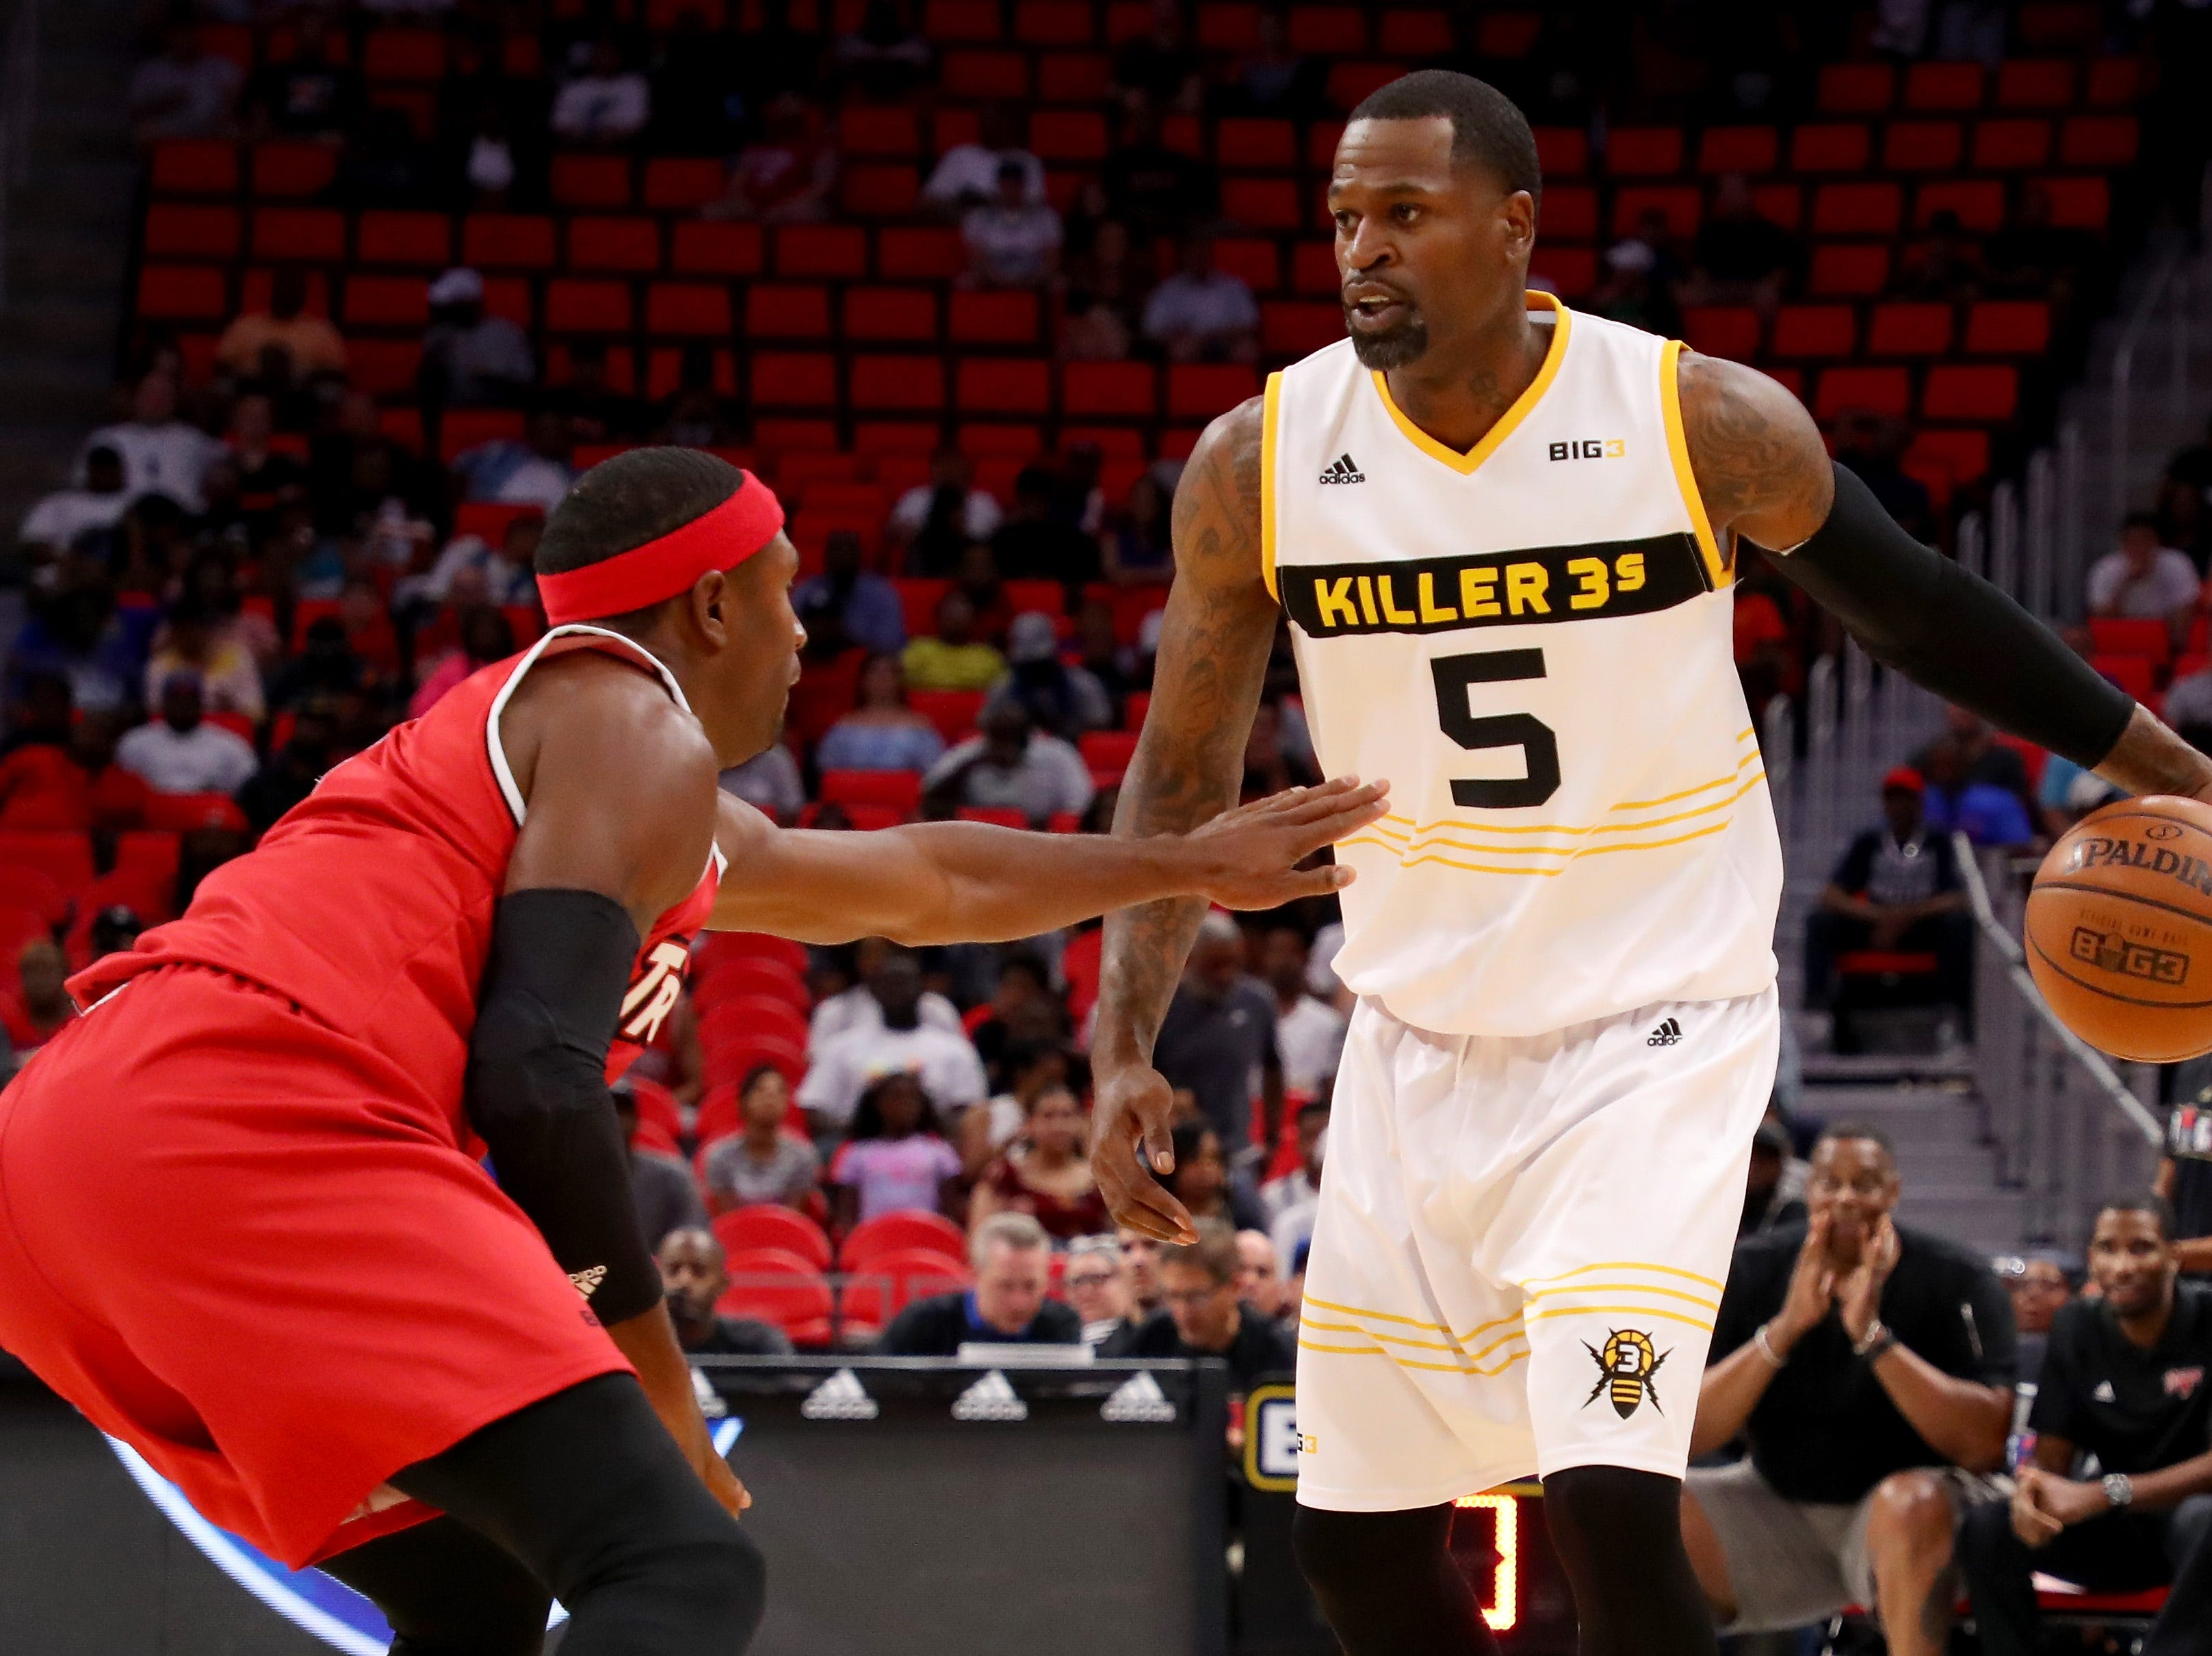 Stephen Jackson of the Killer 3s dribbles the ball while being guarded by Derrick Byars of Trilogy during BIG3 - Week Four at Little Caesars Arena on July 13, 2018 in Detroit.